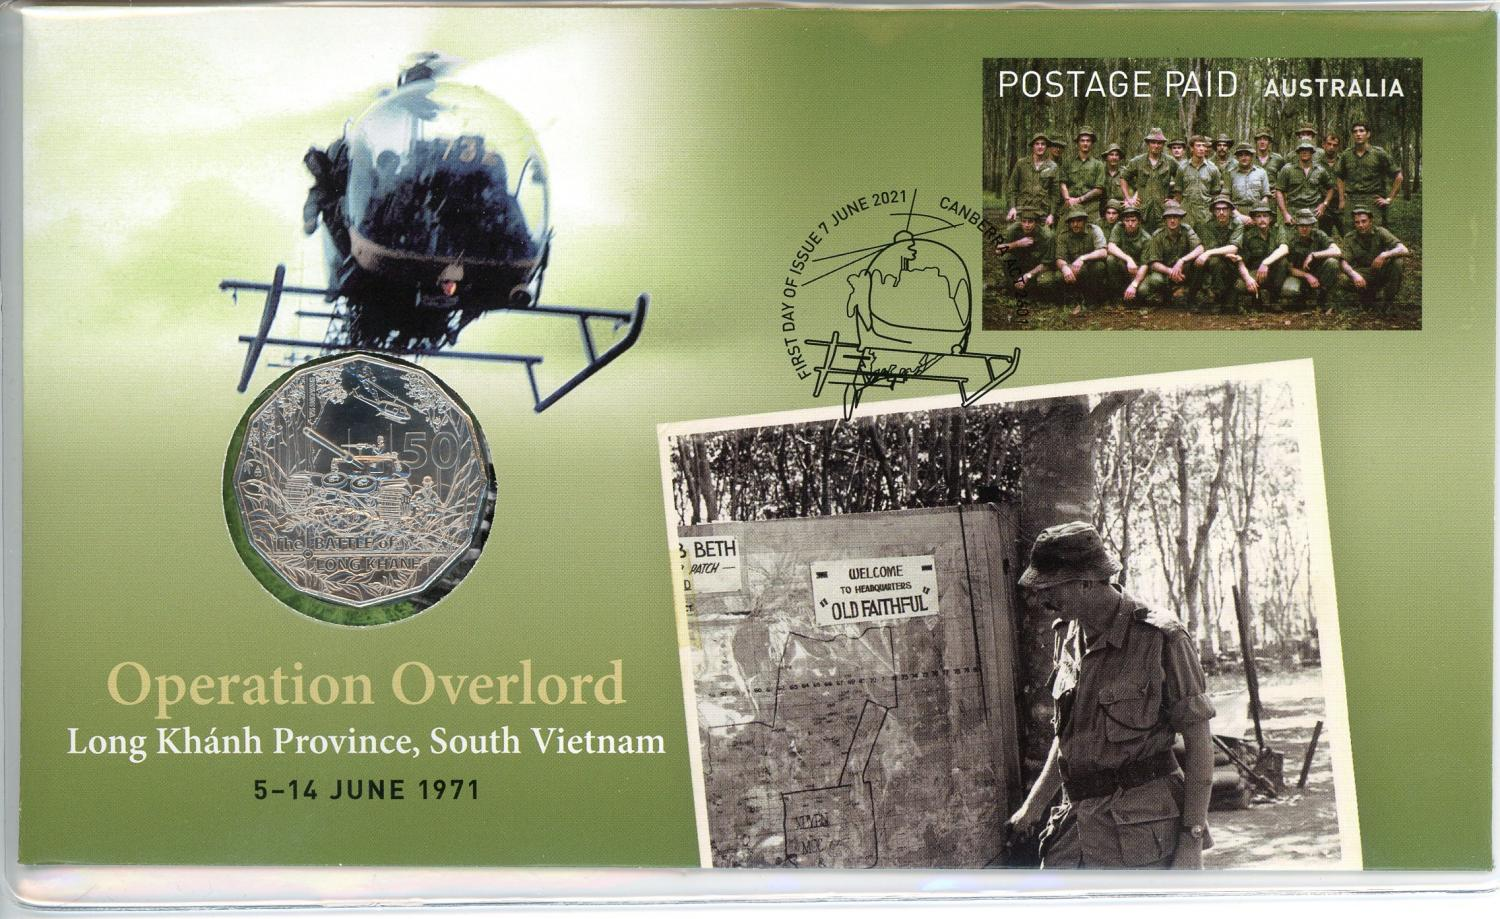 Thumbnail for 2021 Issue 25 Operation Overload Long Khanh Province, SOuth Vietnam 5 - 14 June 1971 RAM 50¢ PNC